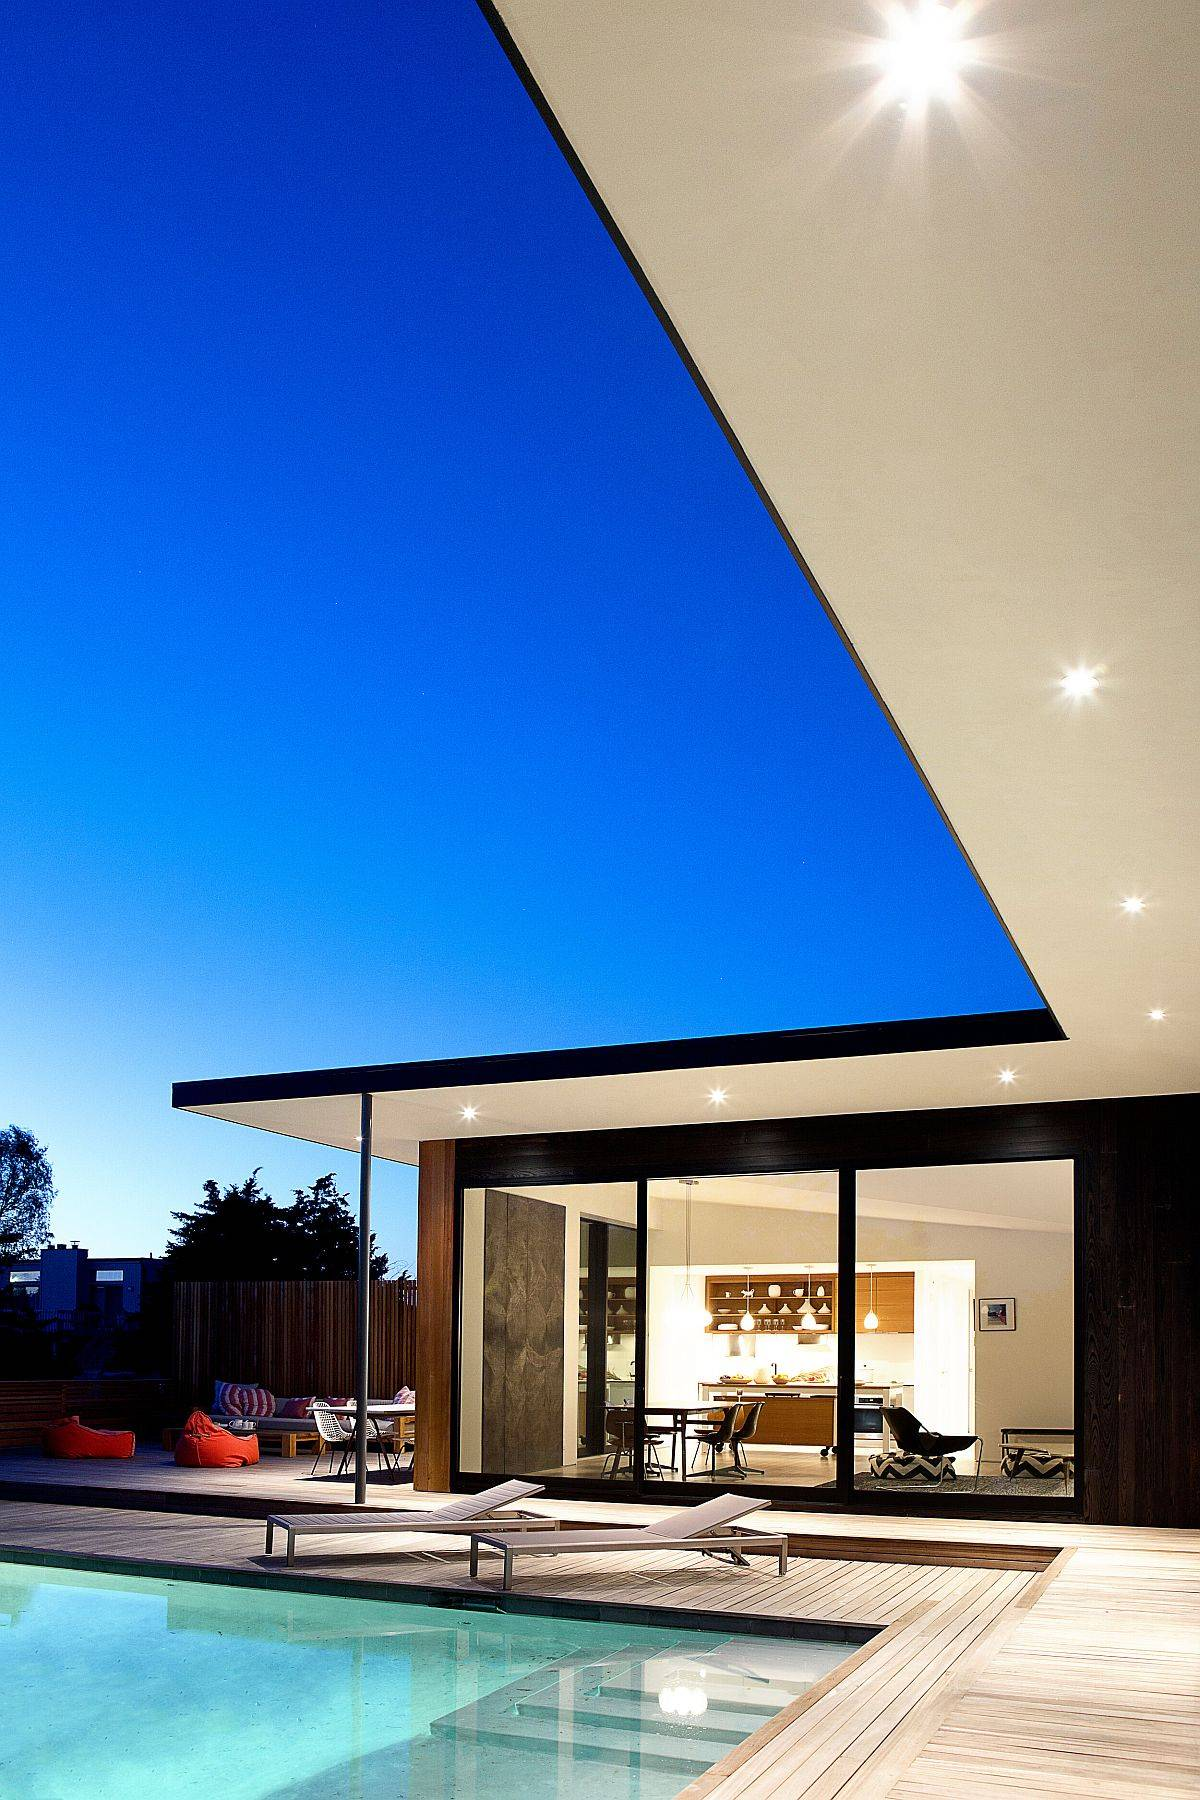 L-shaped-design-of-the-home-creates-a-private-and-specaious-pool-area-73232